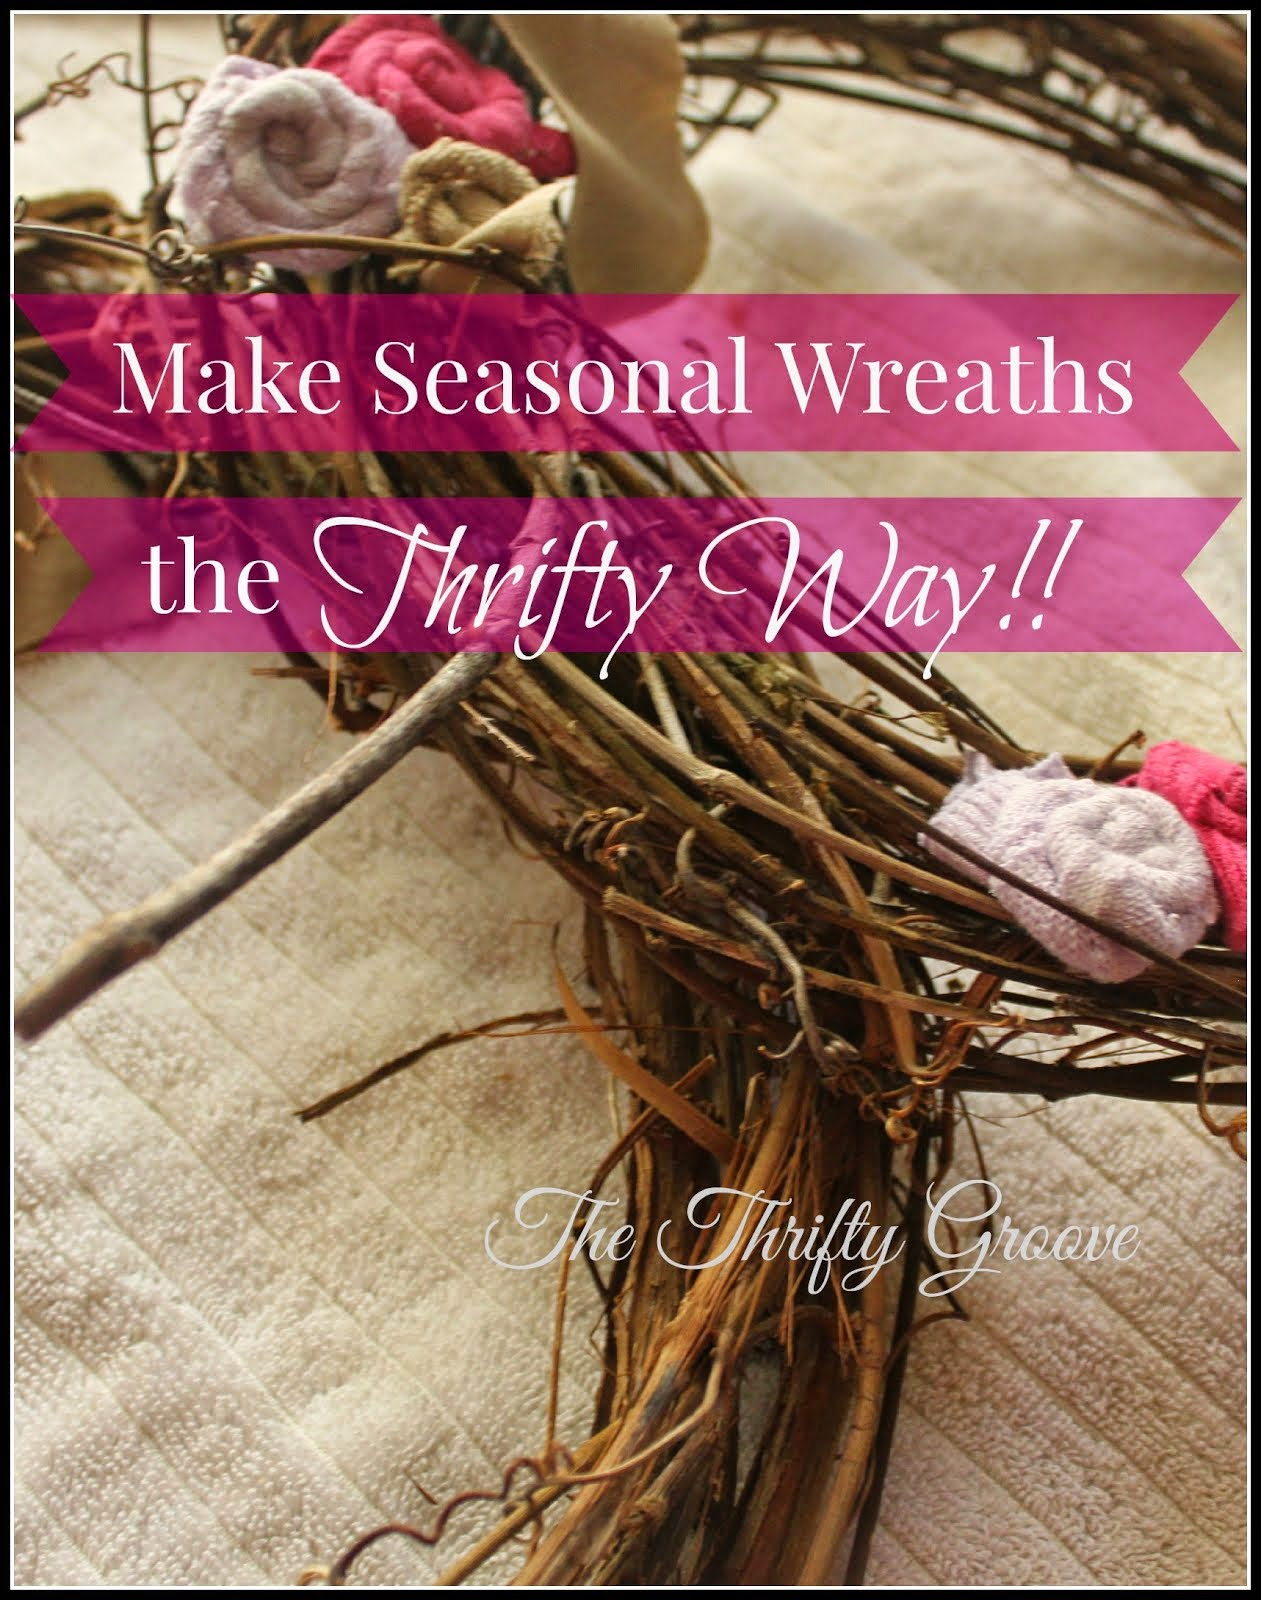 Making Seasonal Wreaths the Thrifty Way!